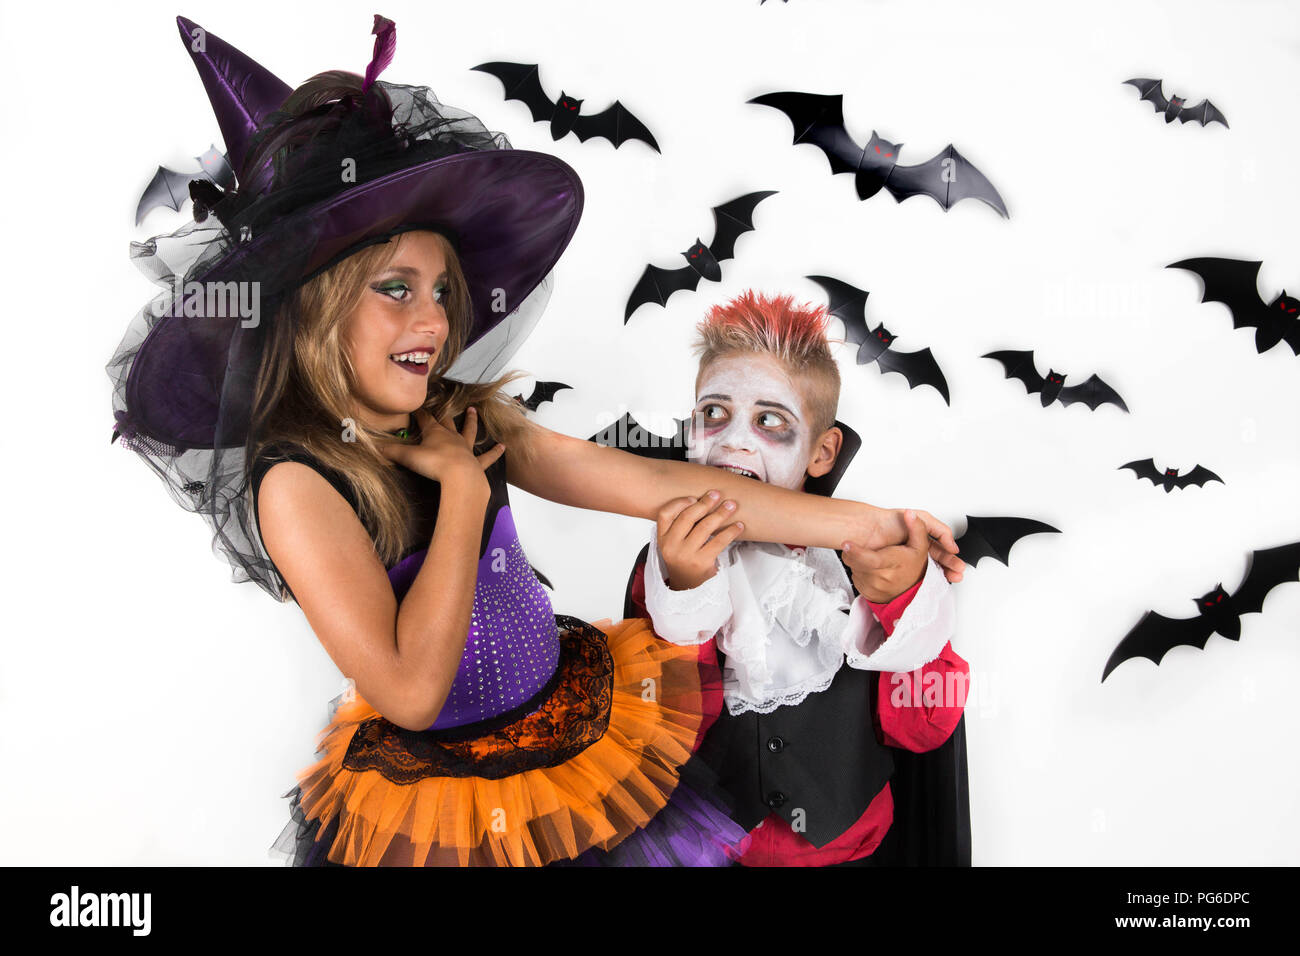 Kids celebrate Halloween in costumes of witch and vampire. Vampire pretends to bite witch's arm and she smiles in response. - Stock Image